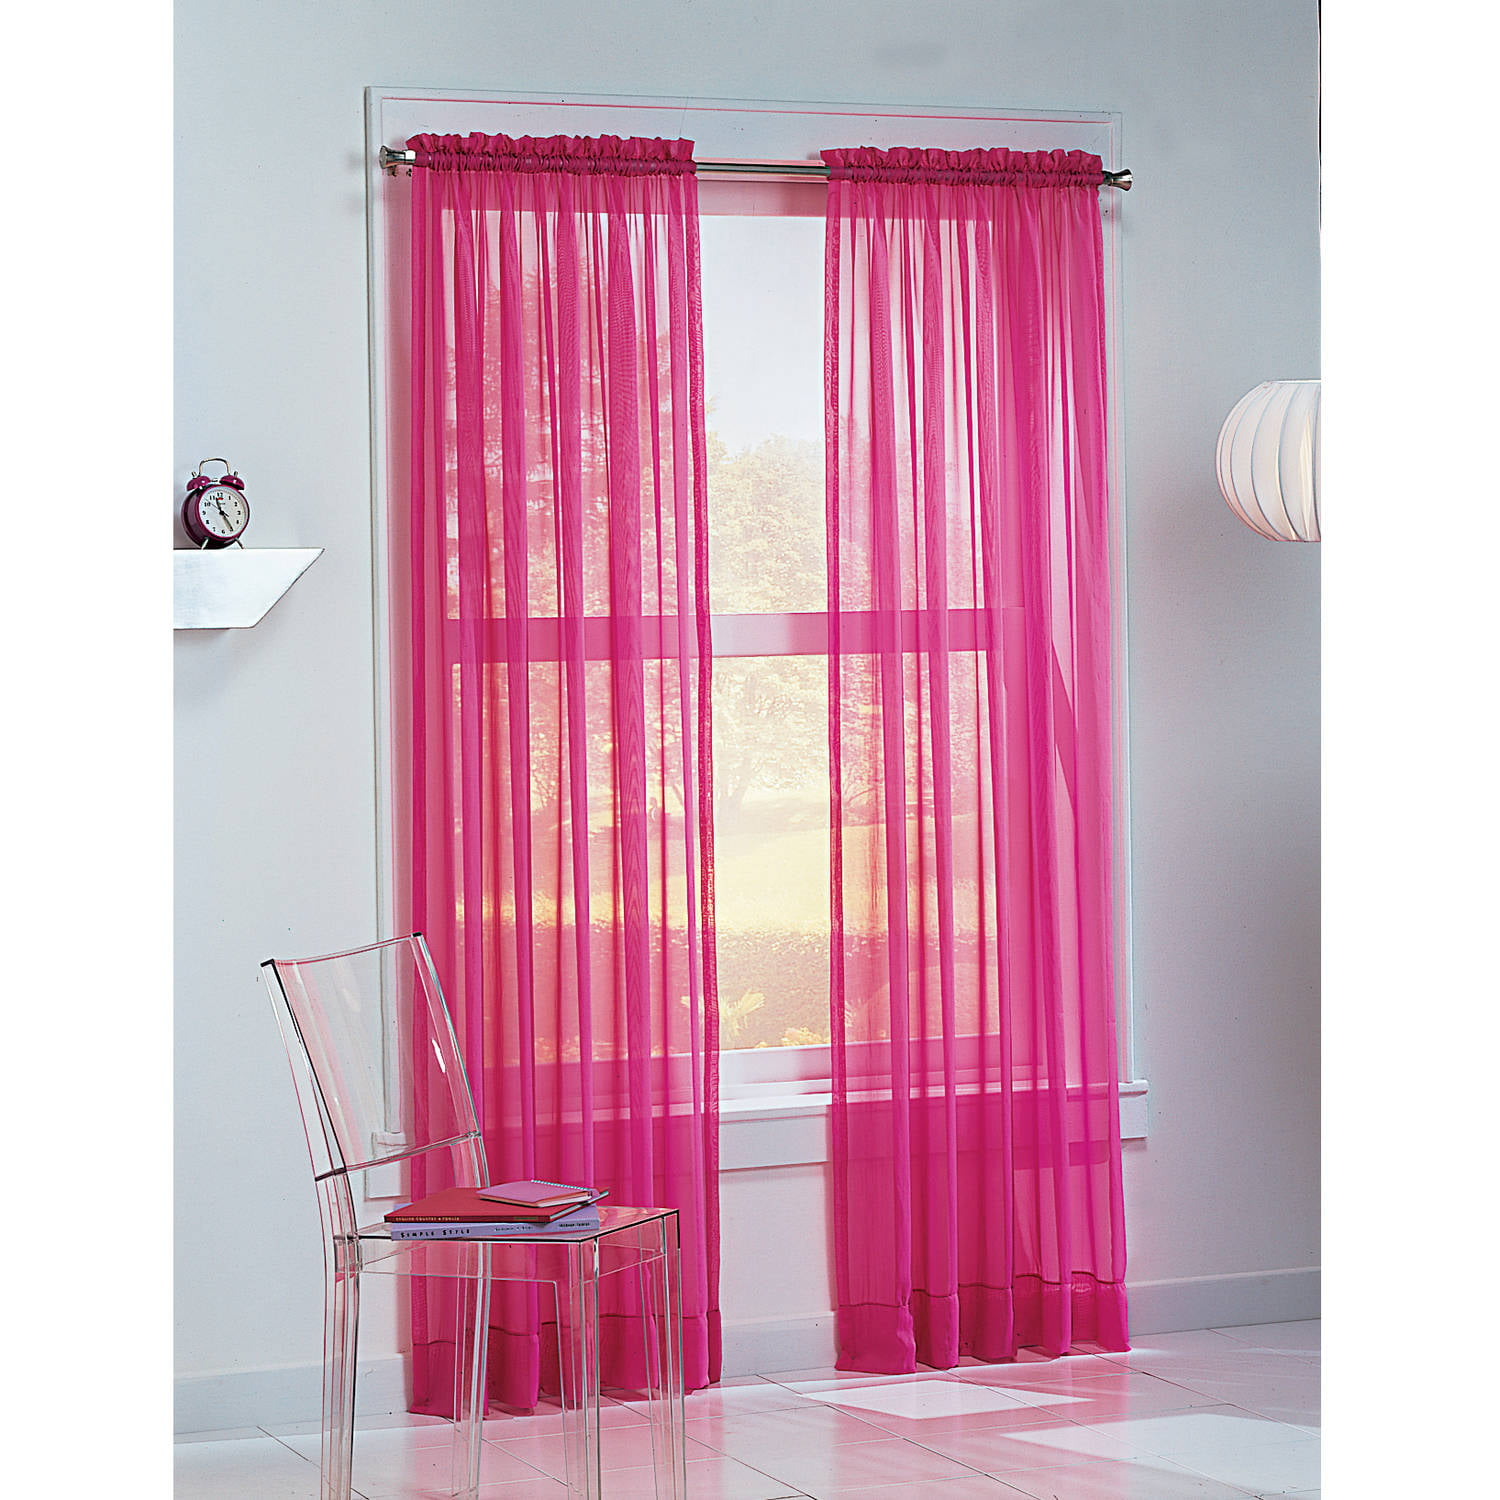 918 Calypso Sheer Voile Rod Pocket Curtain Panel